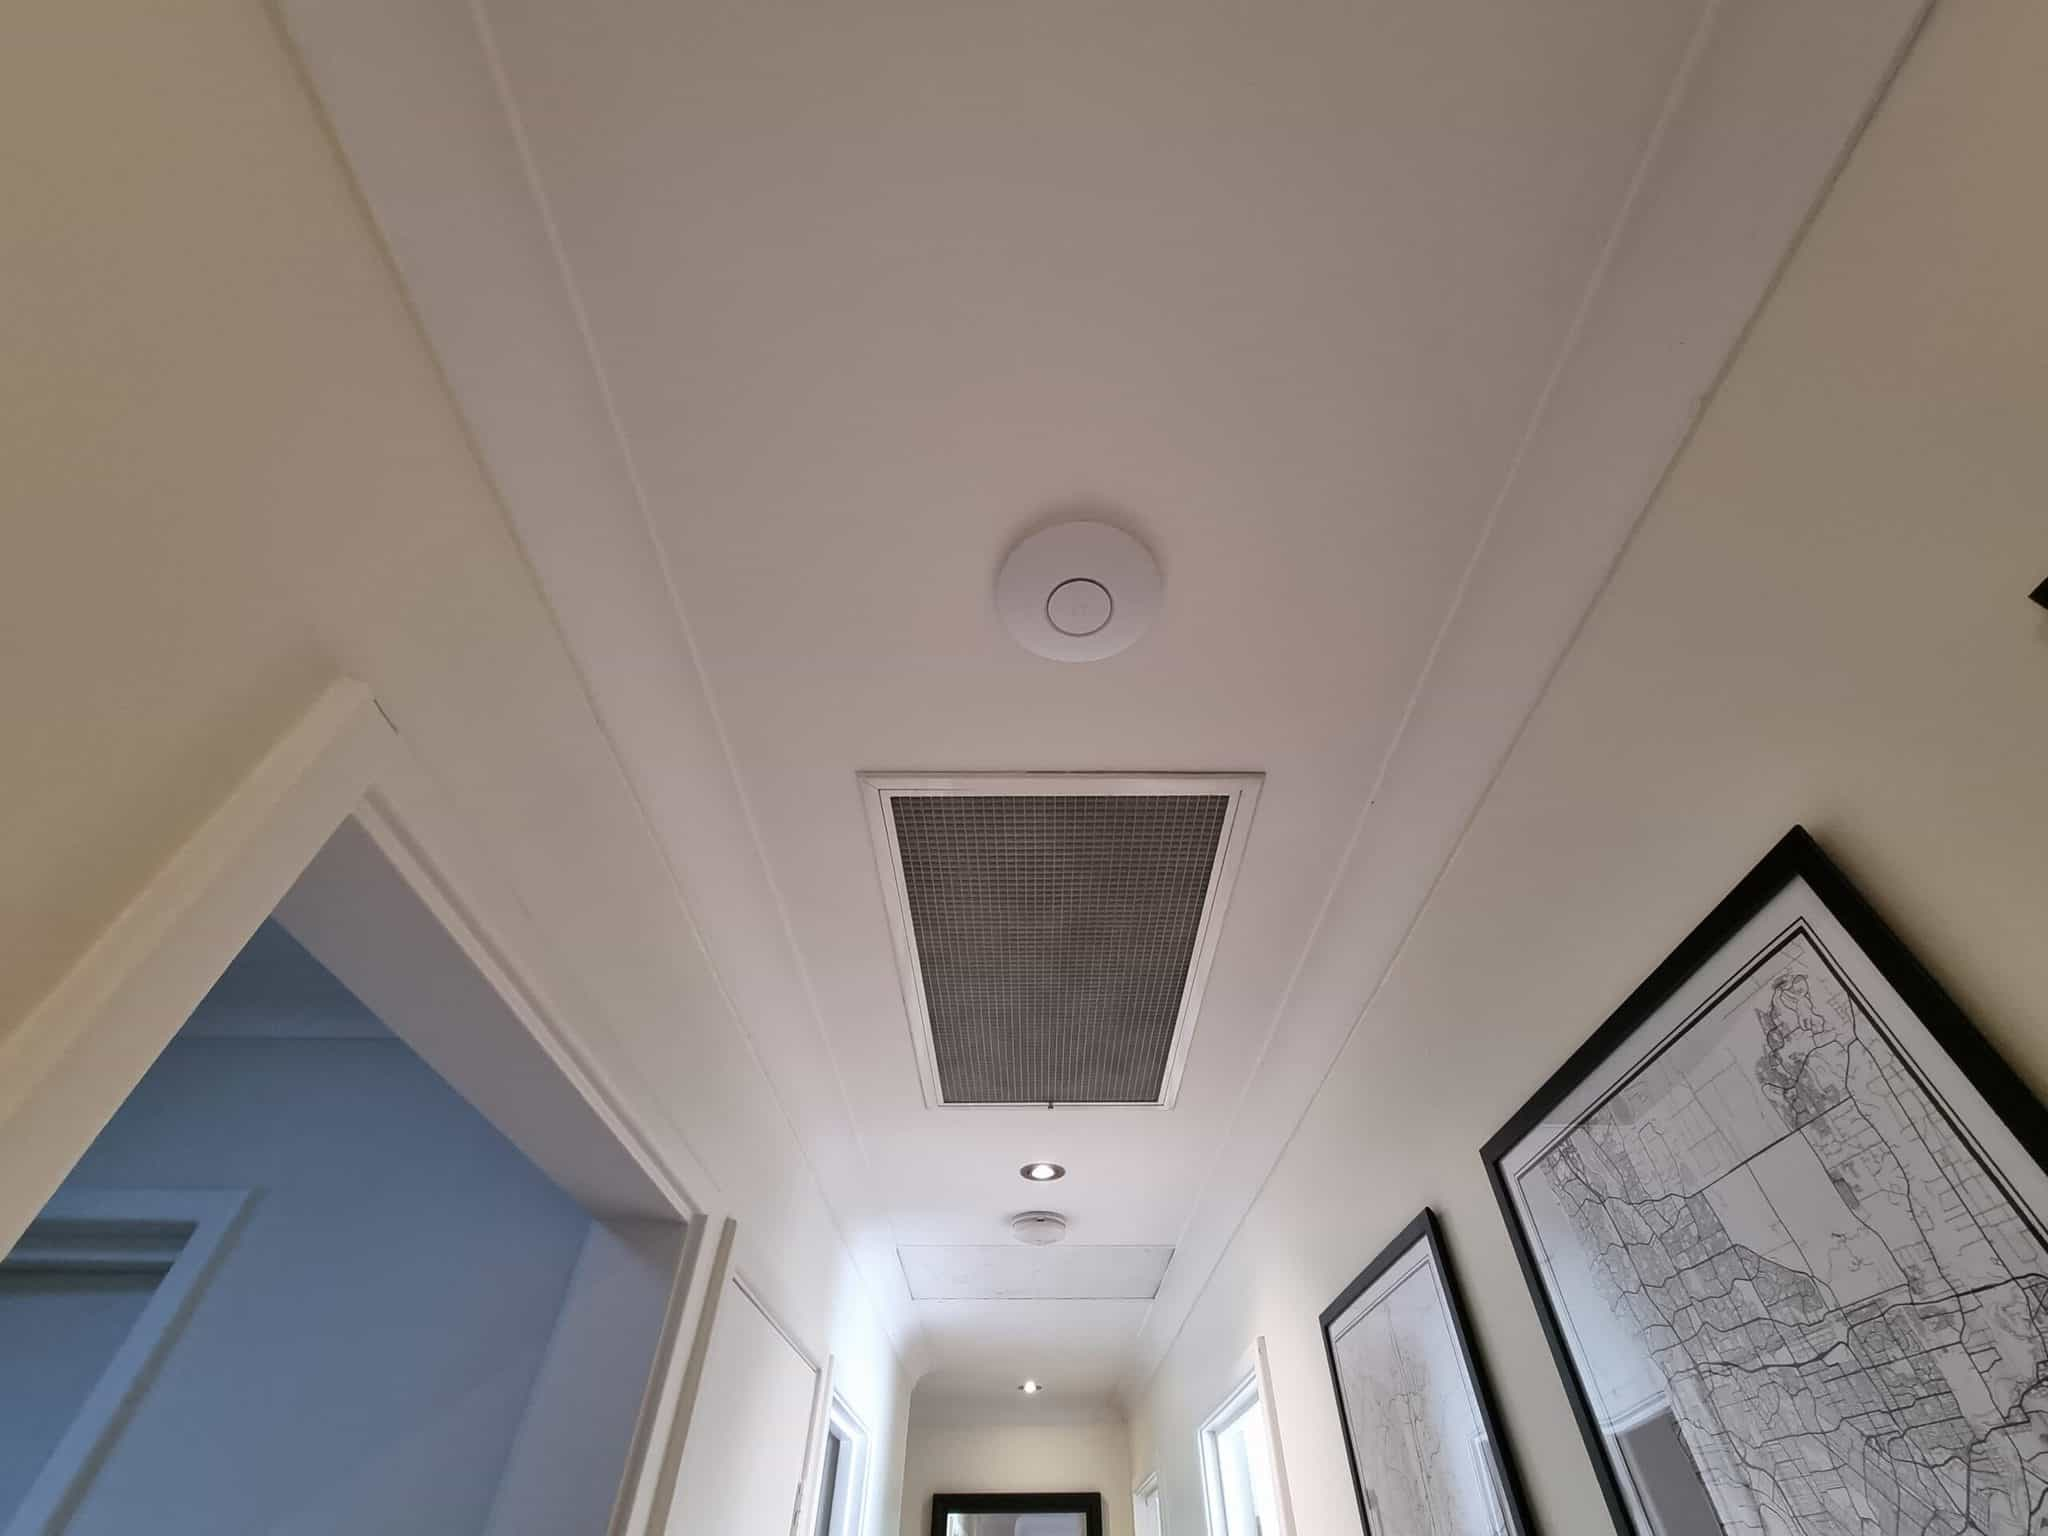 Installation of Ubiquity in a hallway to provide fast intenet to the whole hosue